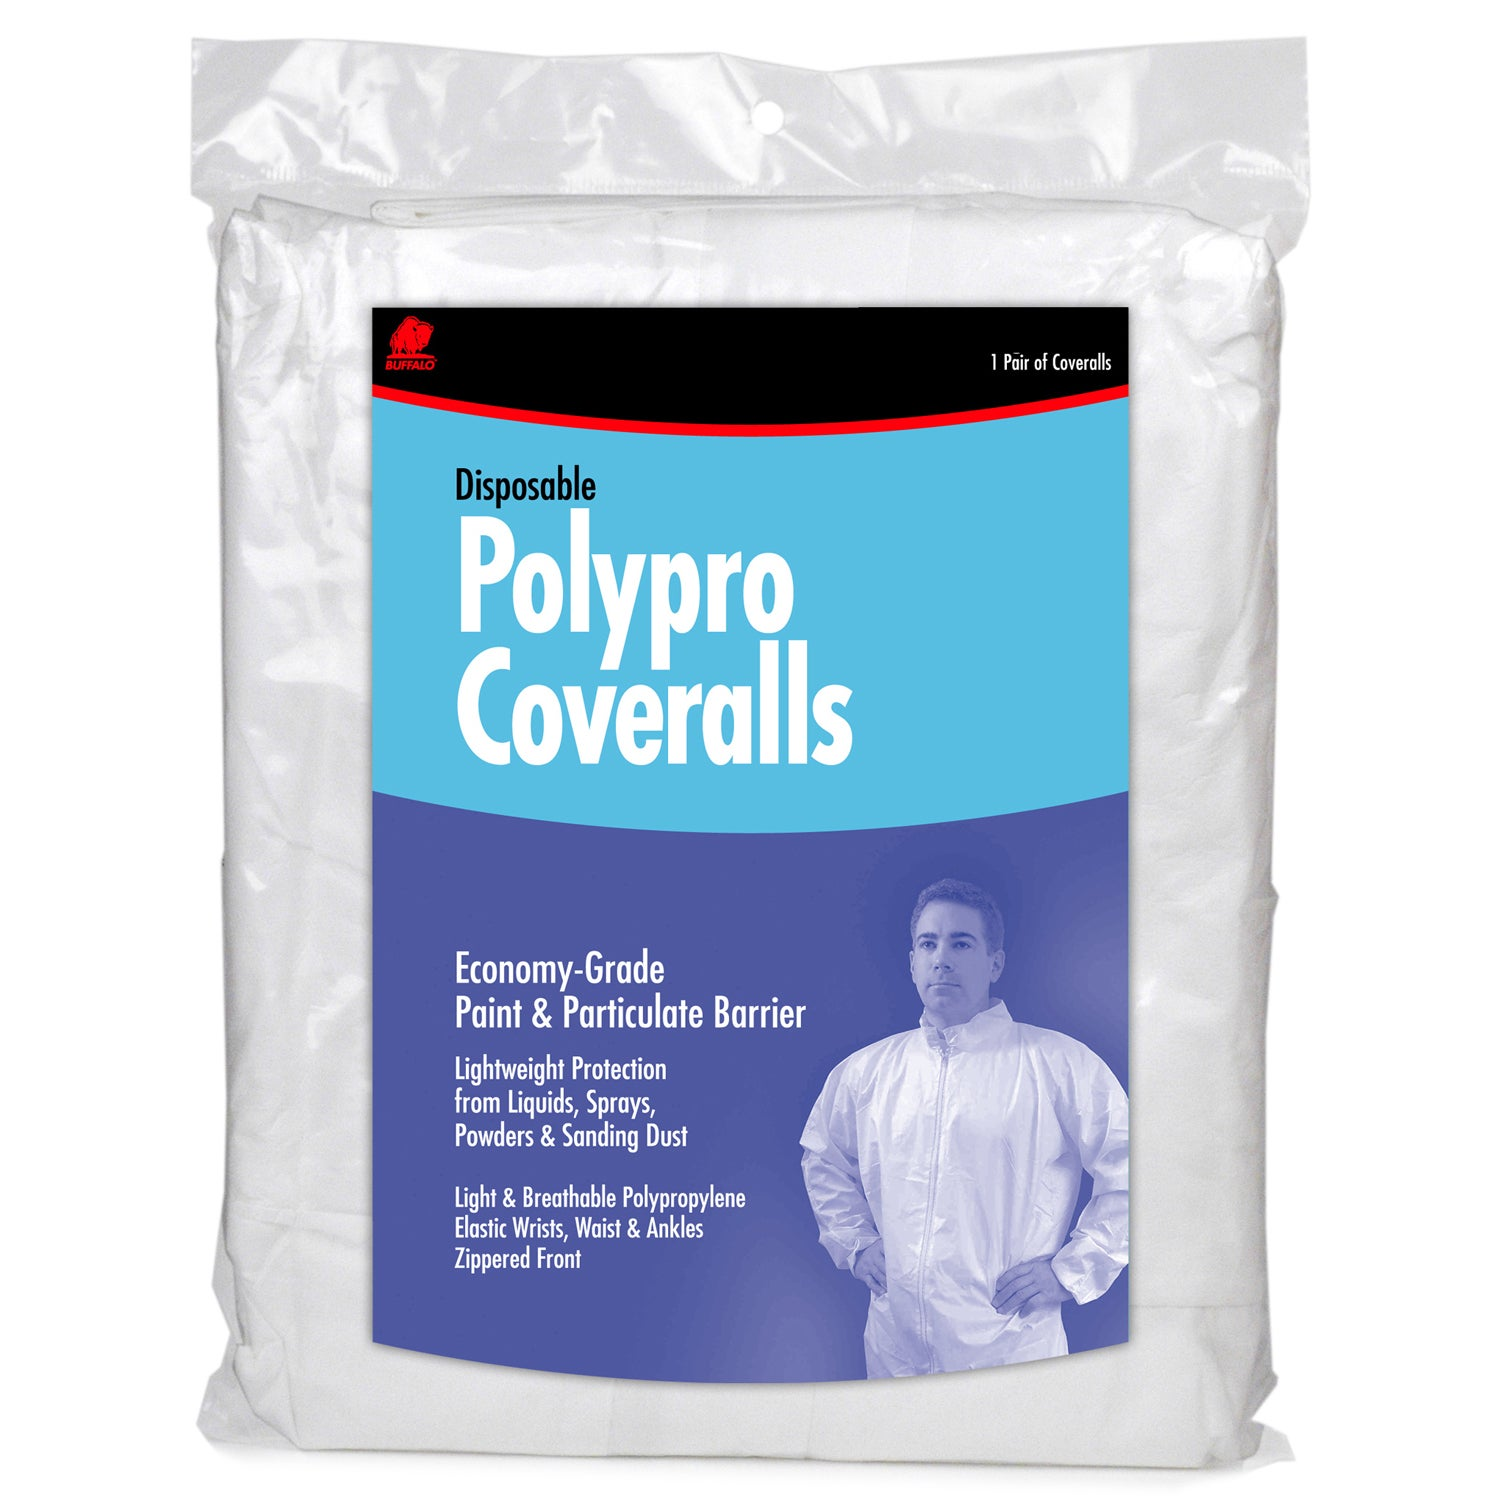 Buffalo 68518 Extra Extra Large Disposable Polypro Coveralls (Safety gear)